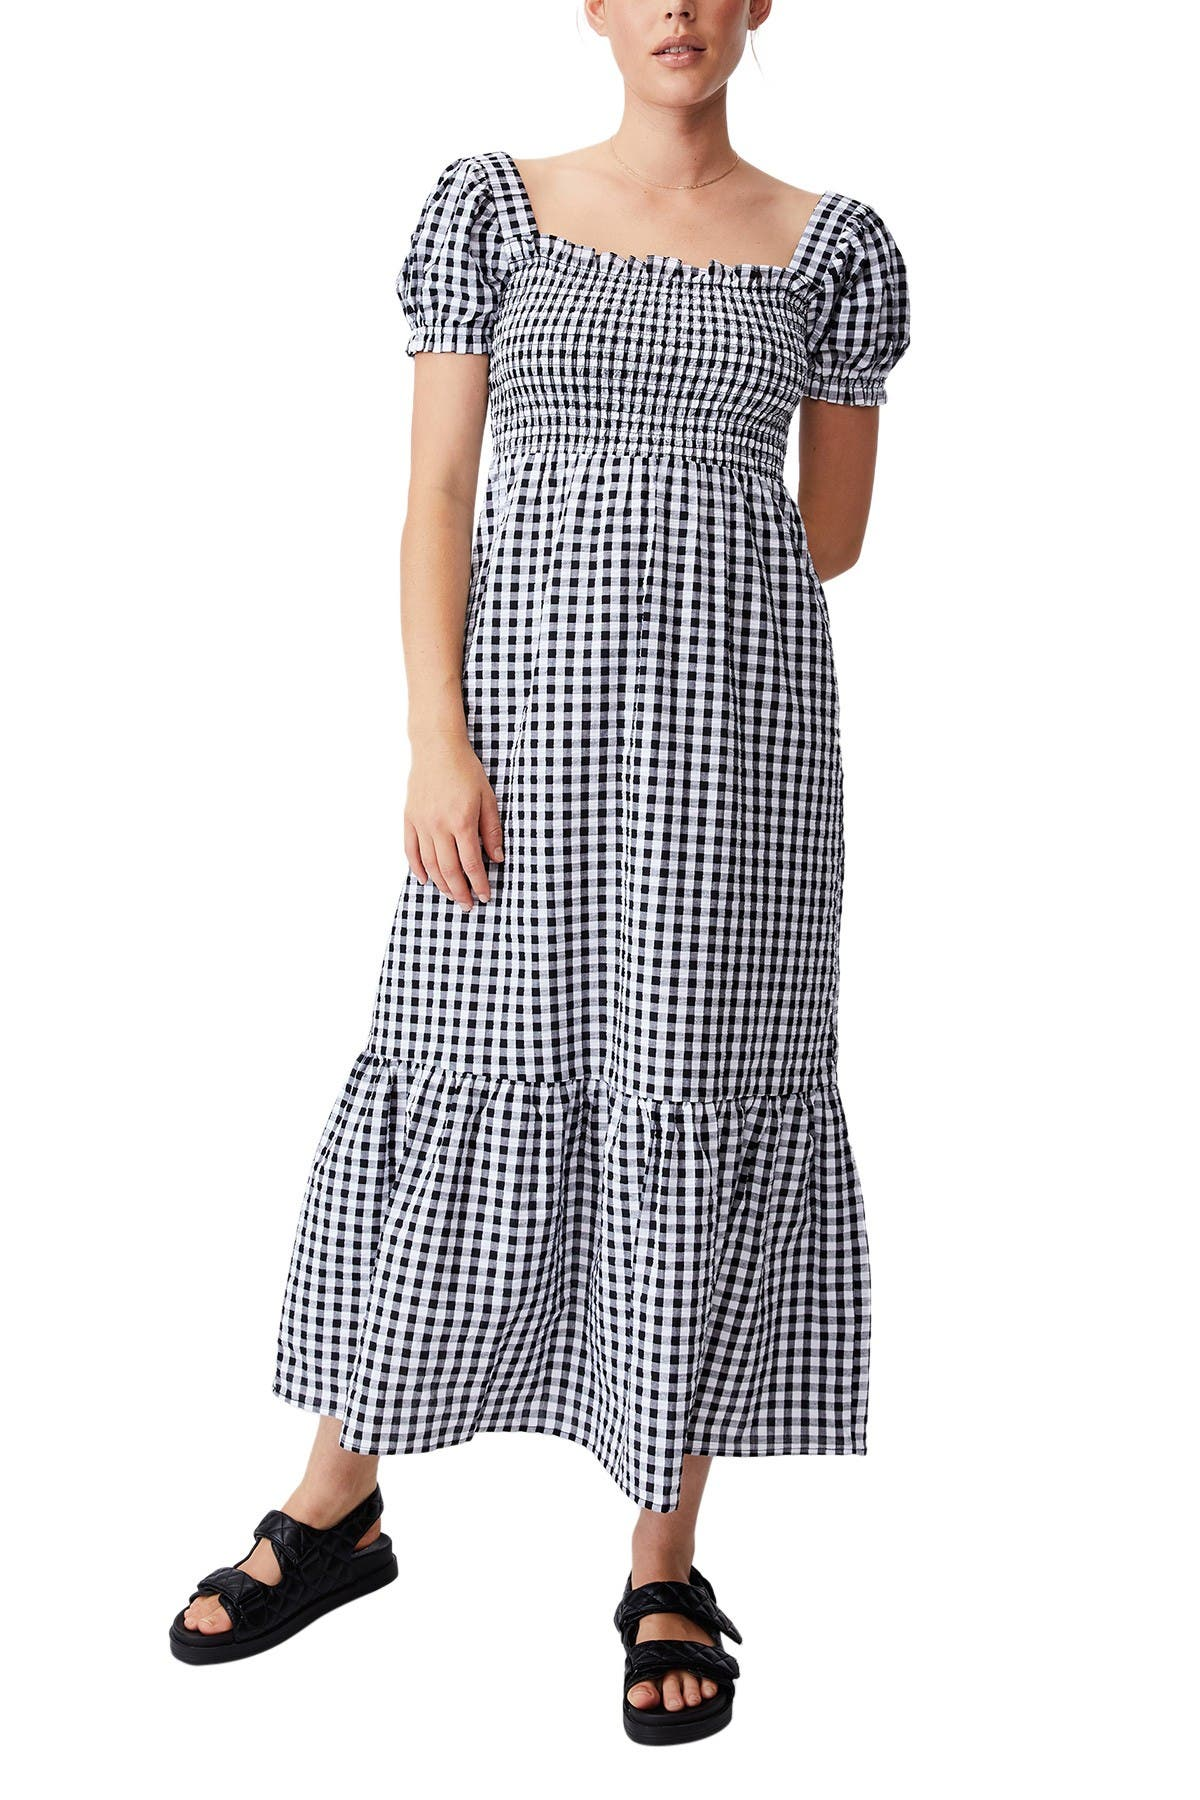 Cottagecore Clothing, Soft Aesthetic Cotton On Woven Louise Shirred Maxi Dress Size XL - Geri Gingham Black at Nordstrom Rack $49.99 AT vintagedancer.com